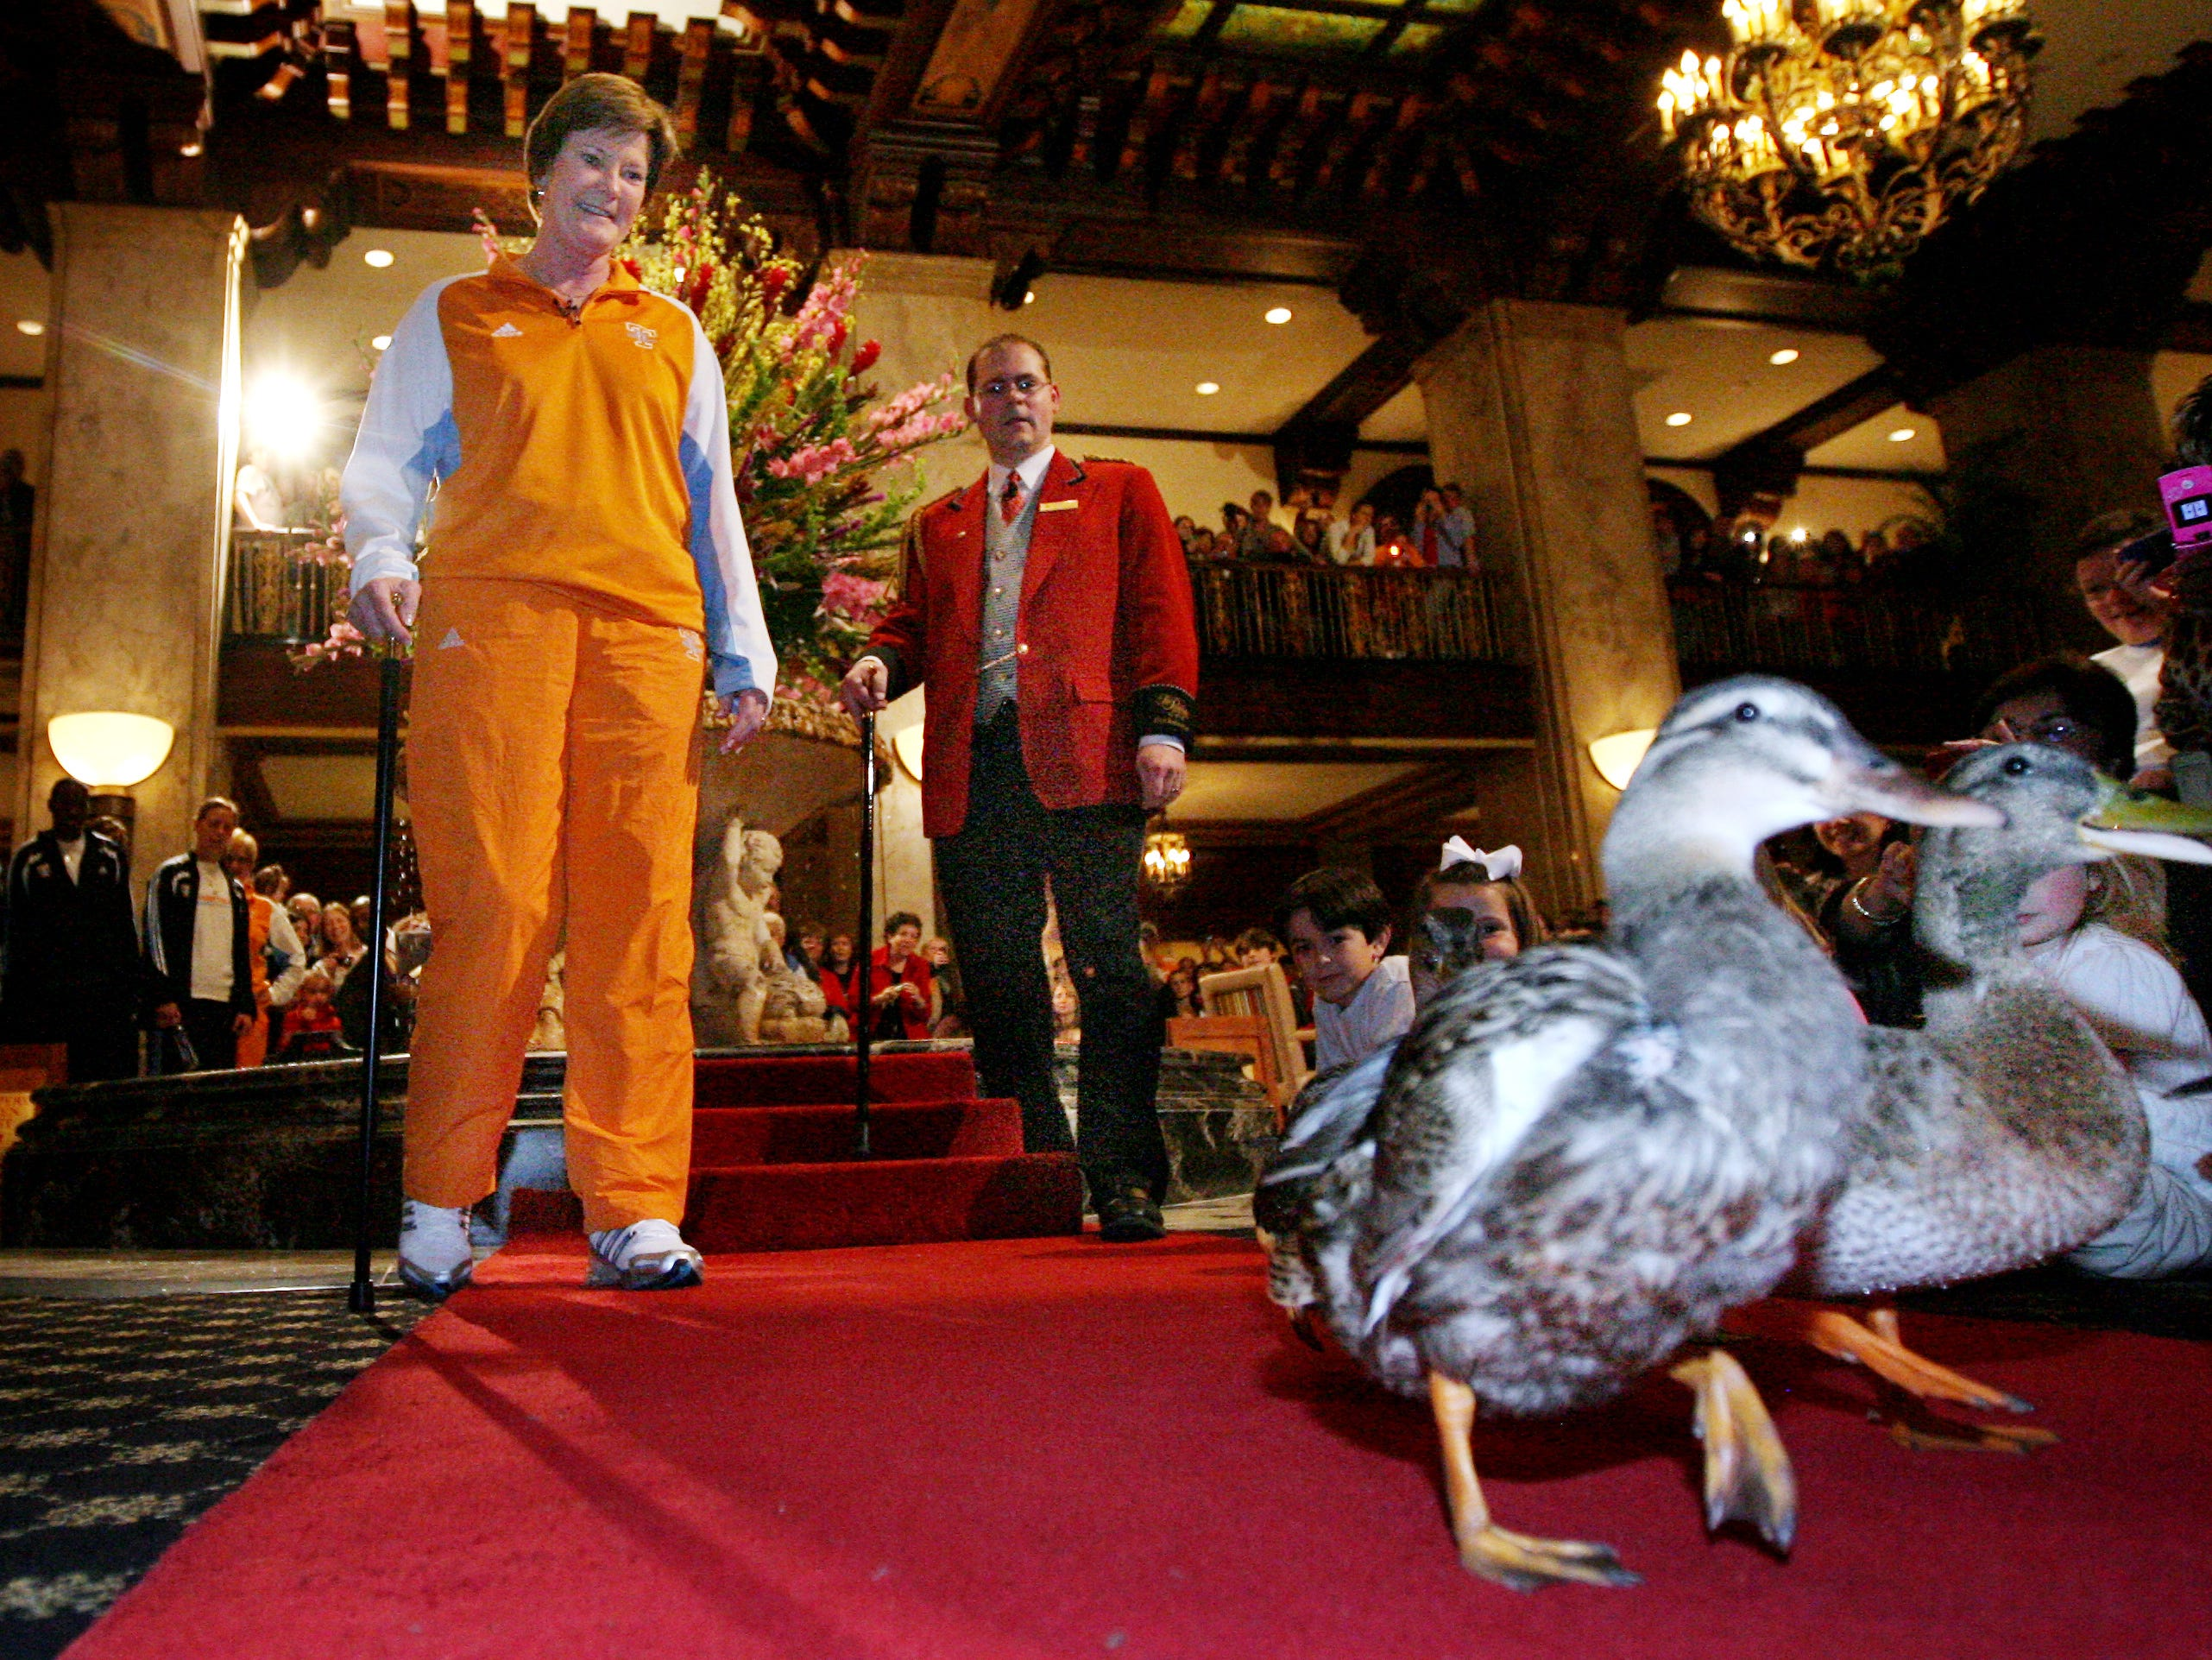 Tennessee head coach Pat Summitt acts as honorary duckmaster and helps wrangle the ducks up to their roost atop the Peabody Hotel in Memphis on March 26, 2010.